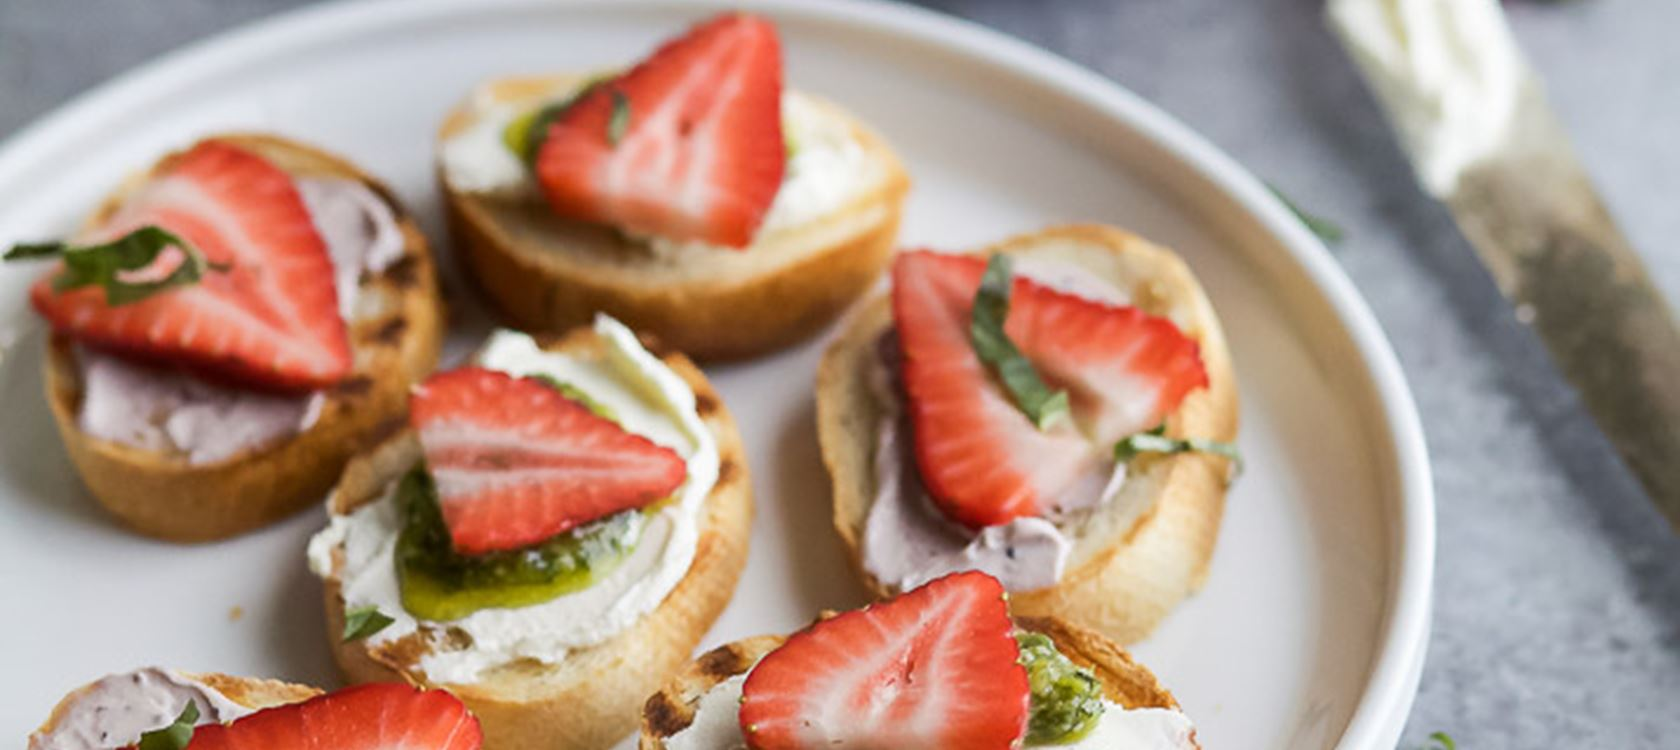 Pesto Cream Cheese Strawberry Bruschetta Bites